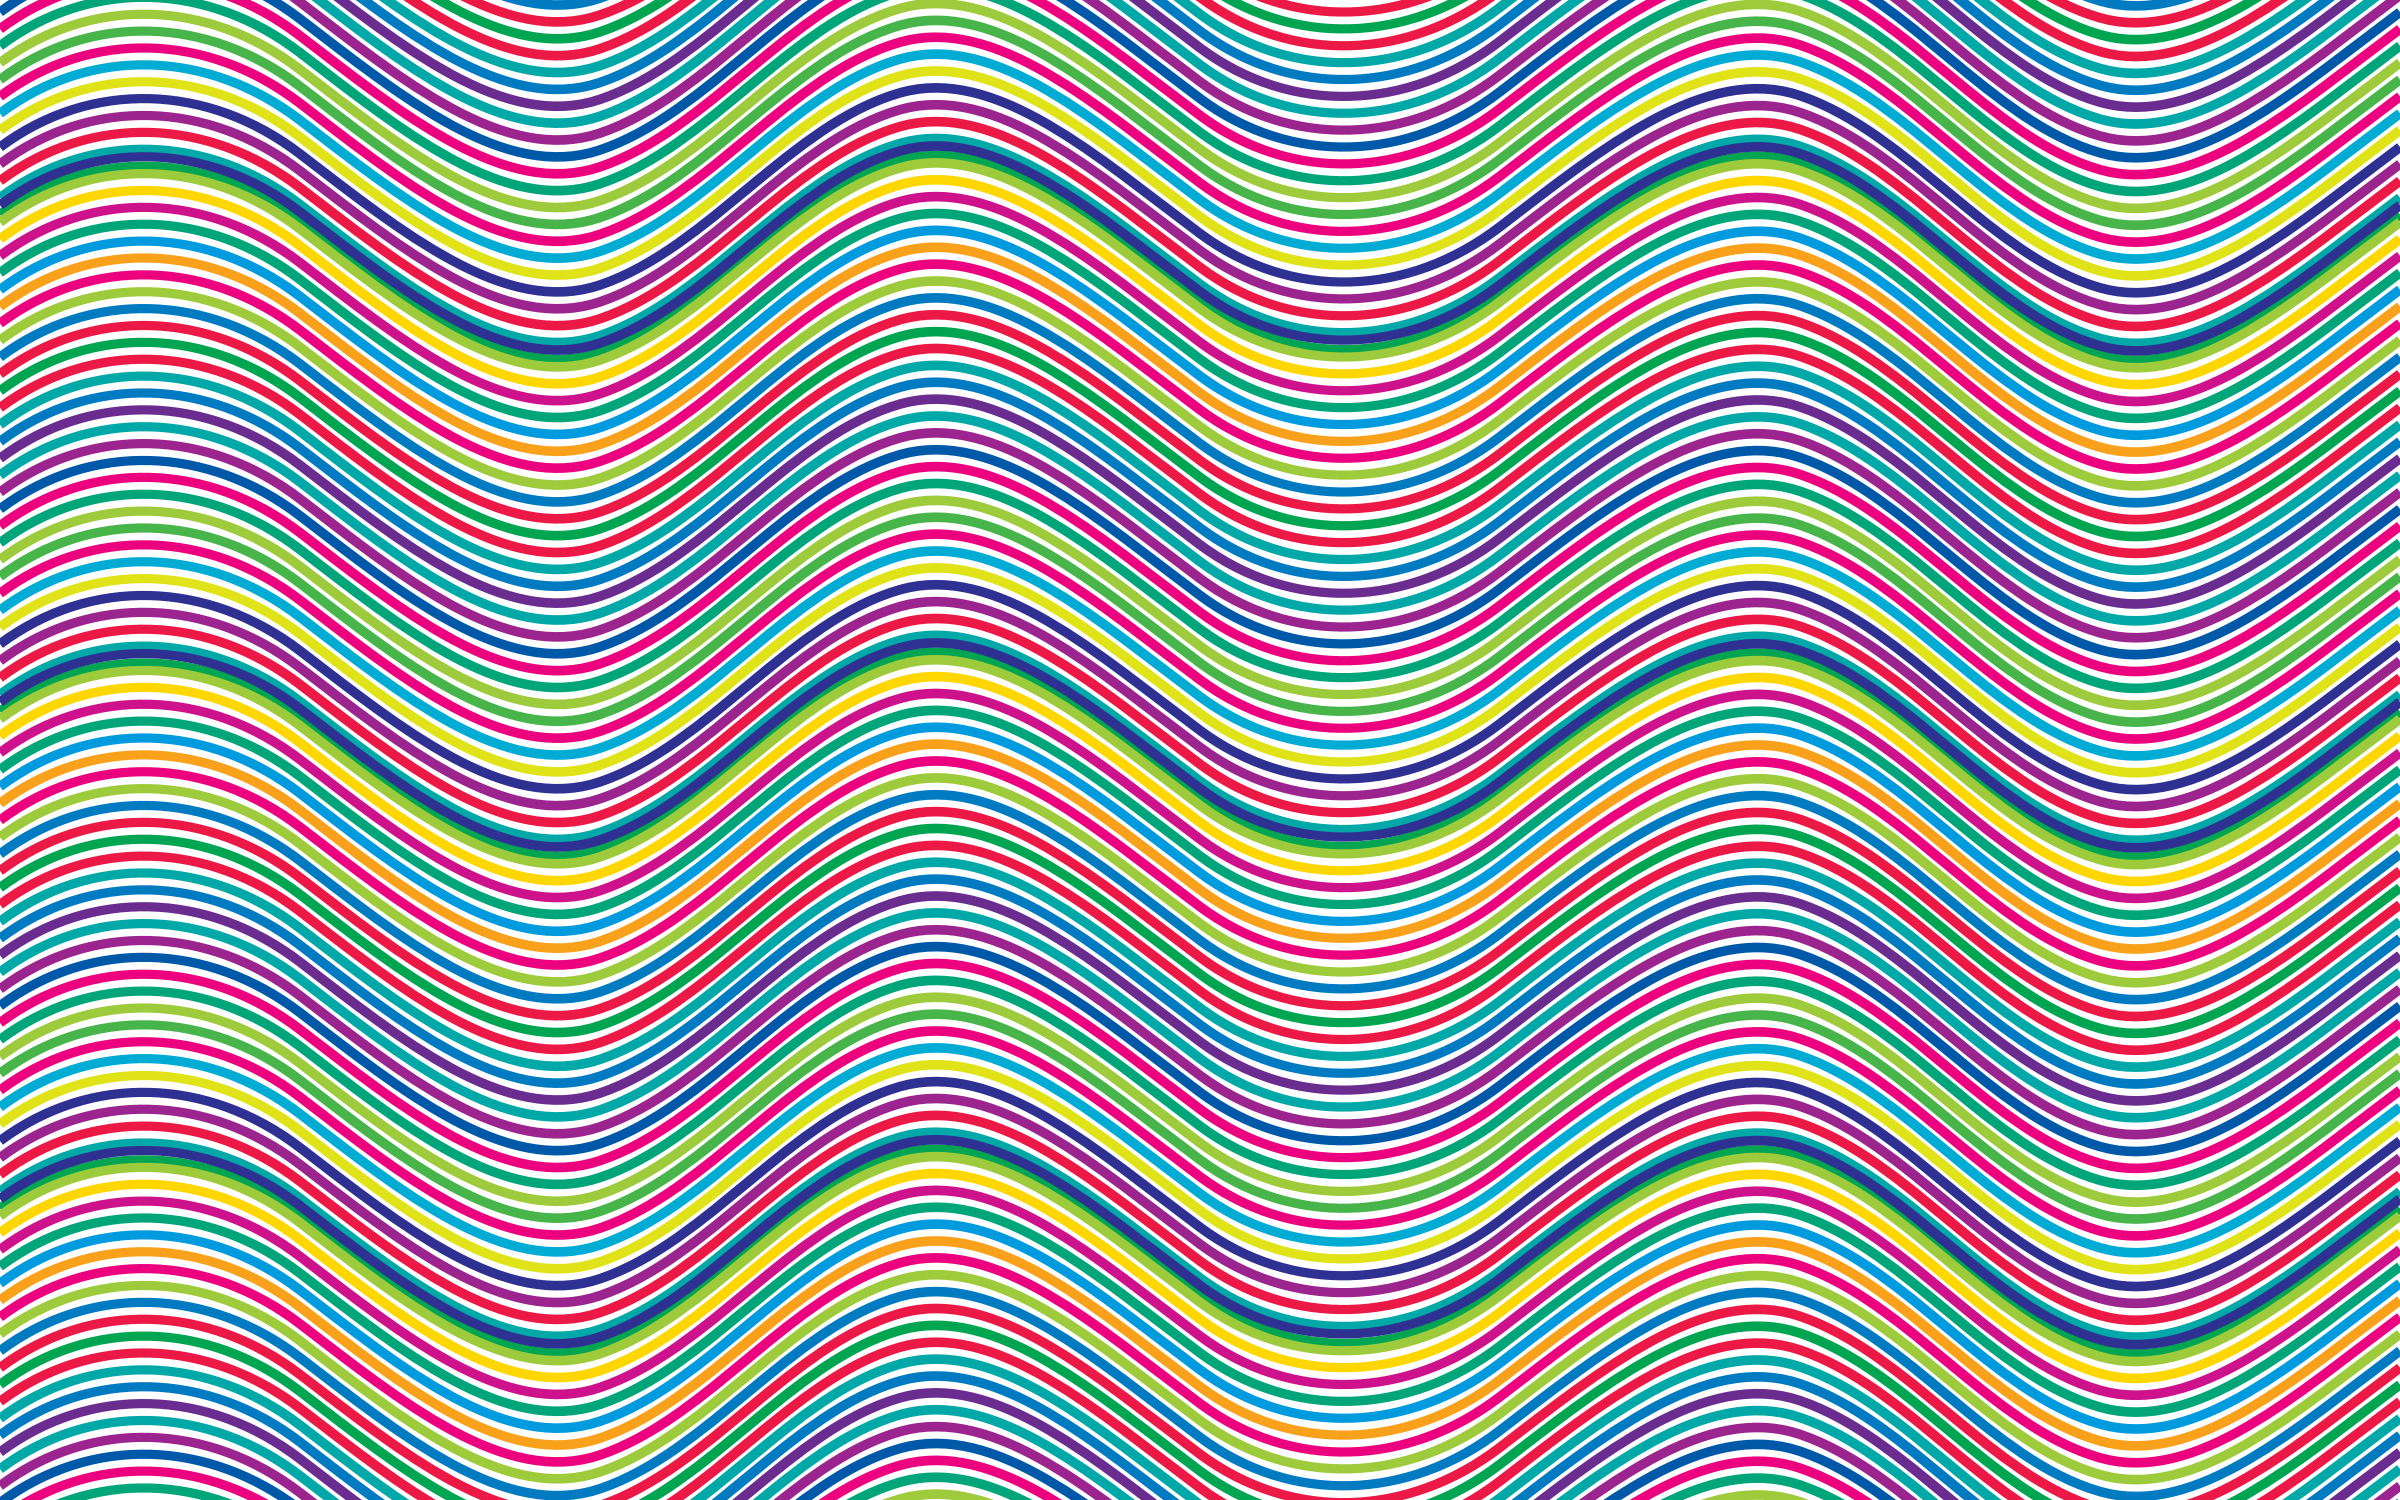 Prismatic Waves Background No Background by GDJ